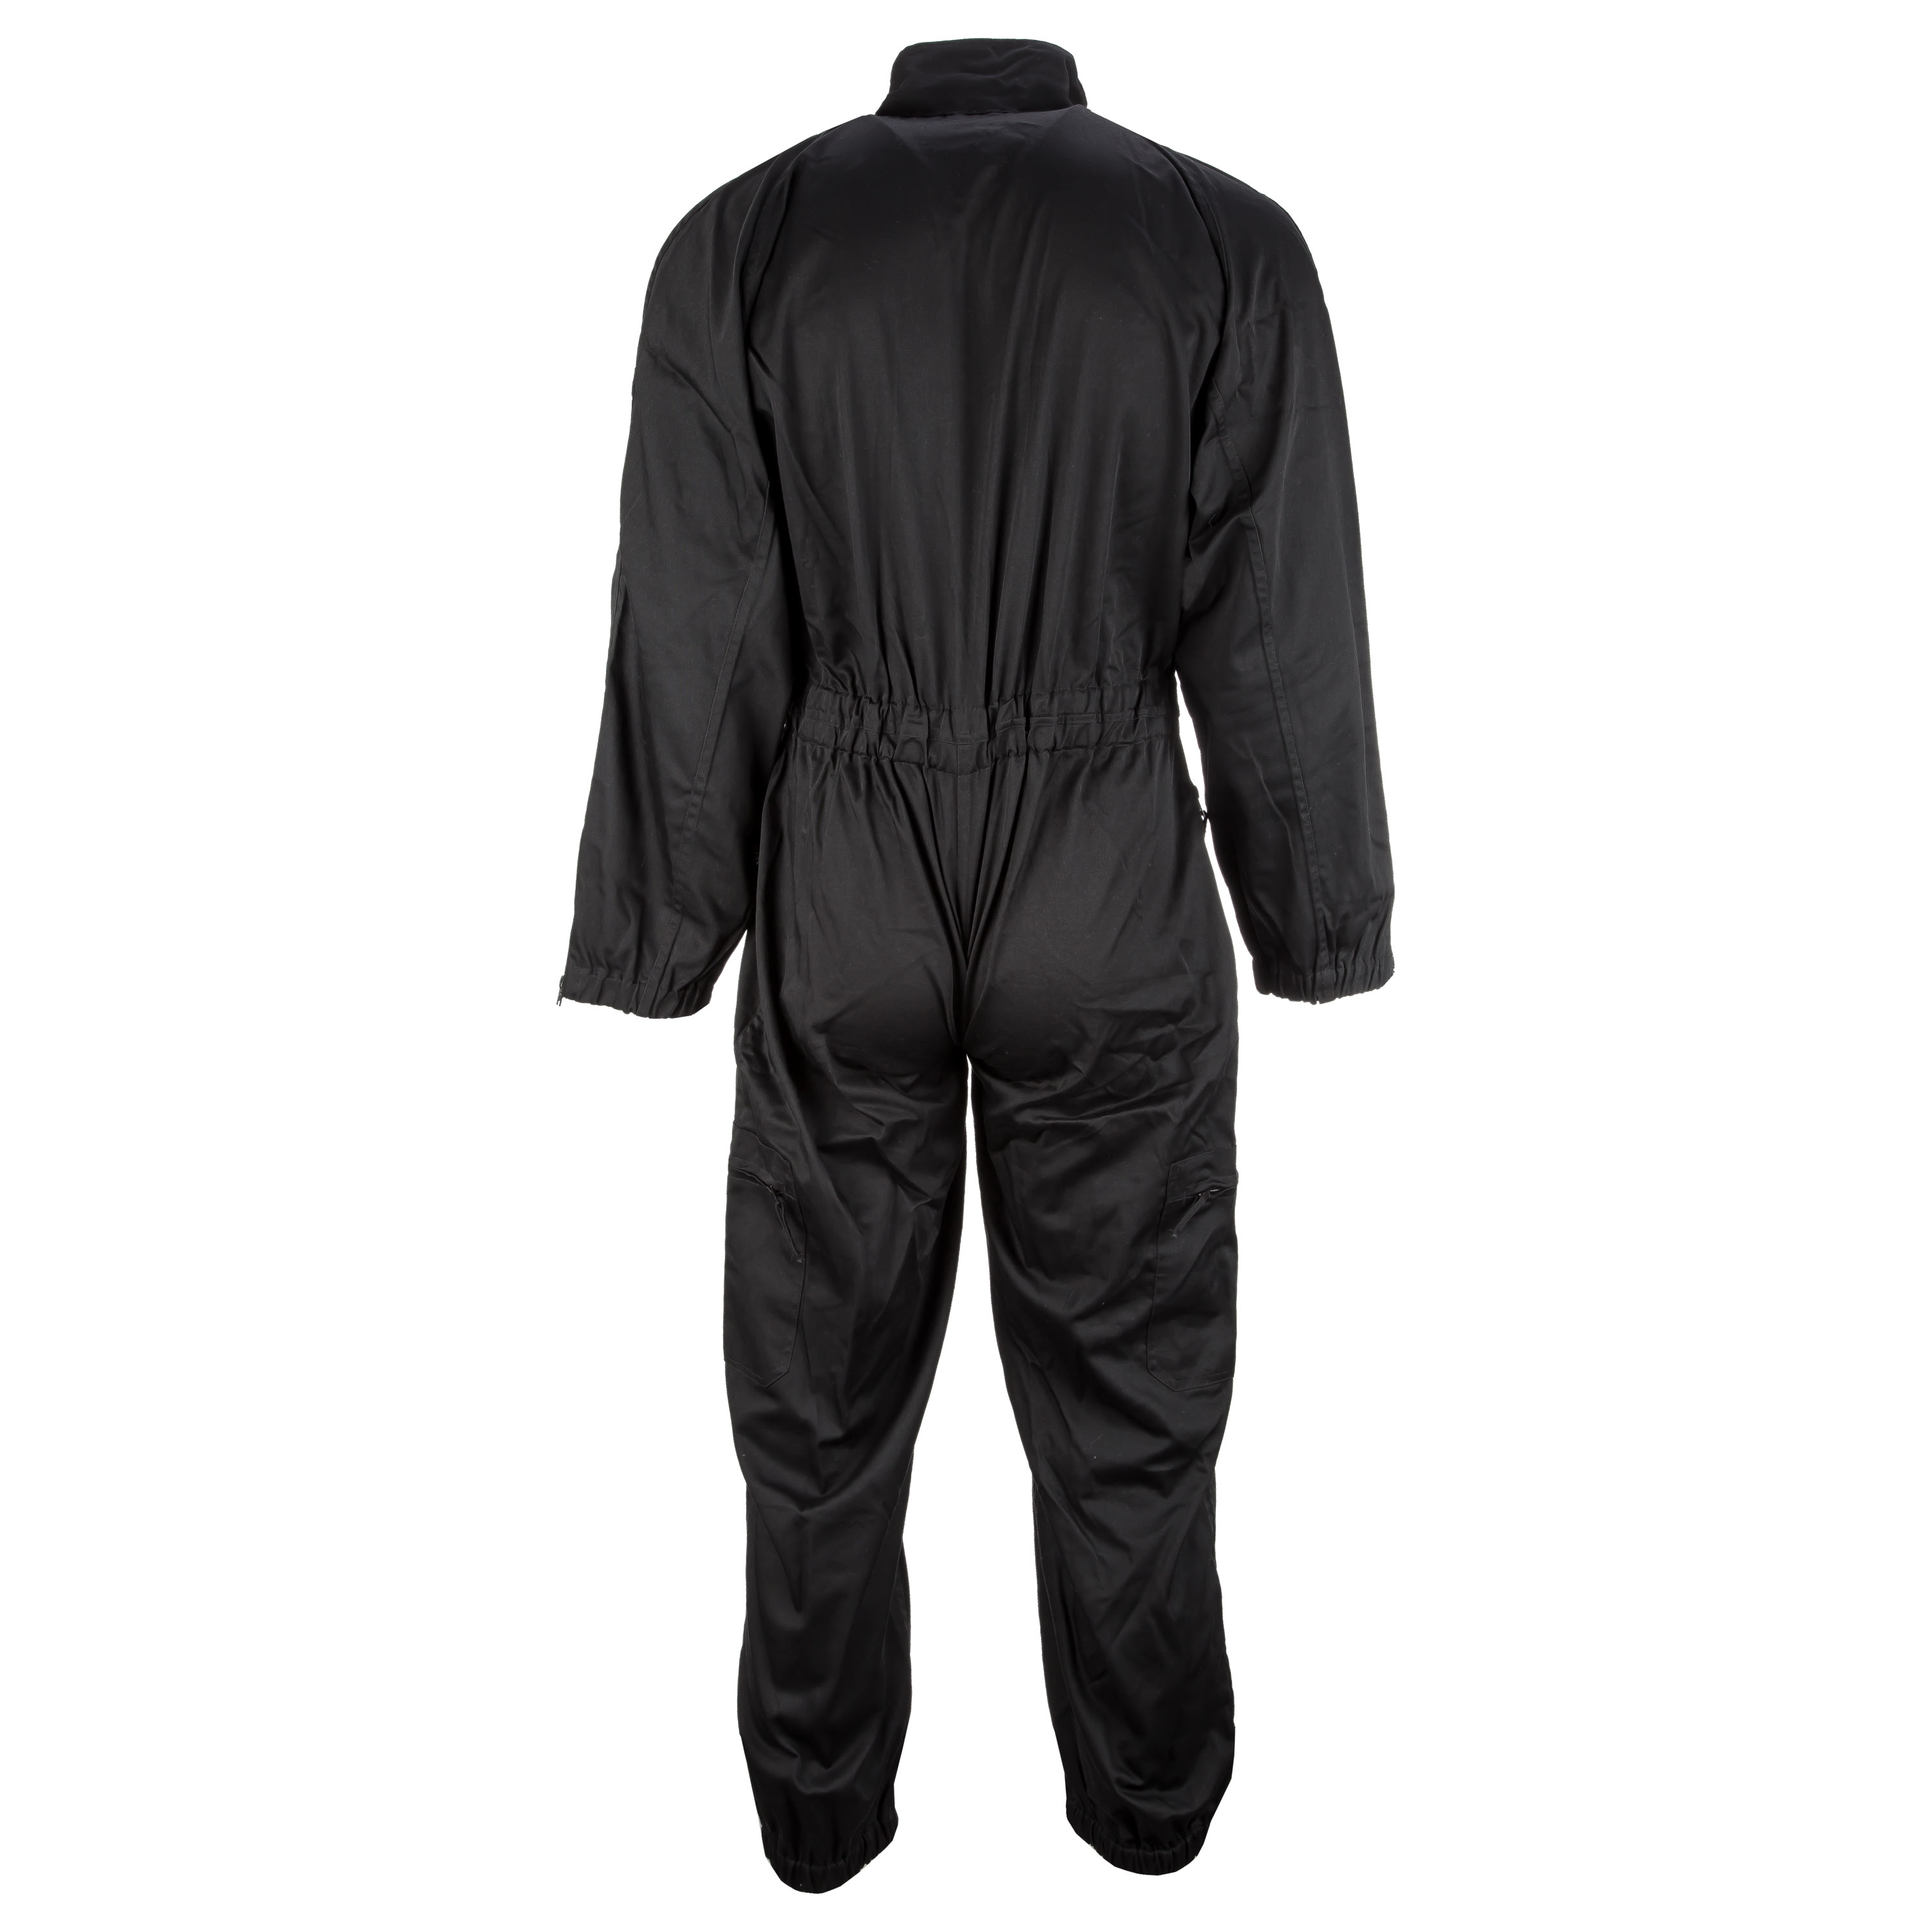 SWAT Coverall black